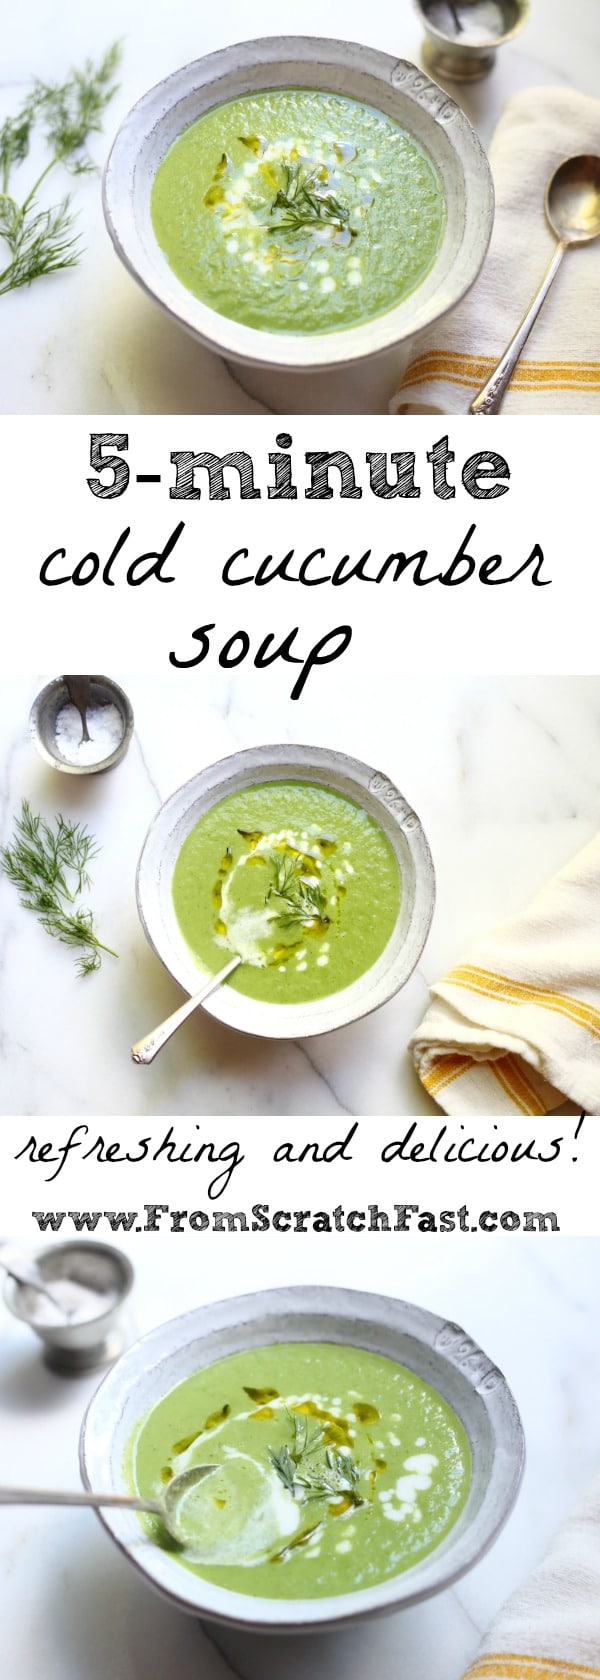 This revitalizing cold cucumber soup comes together in 5 minutes!